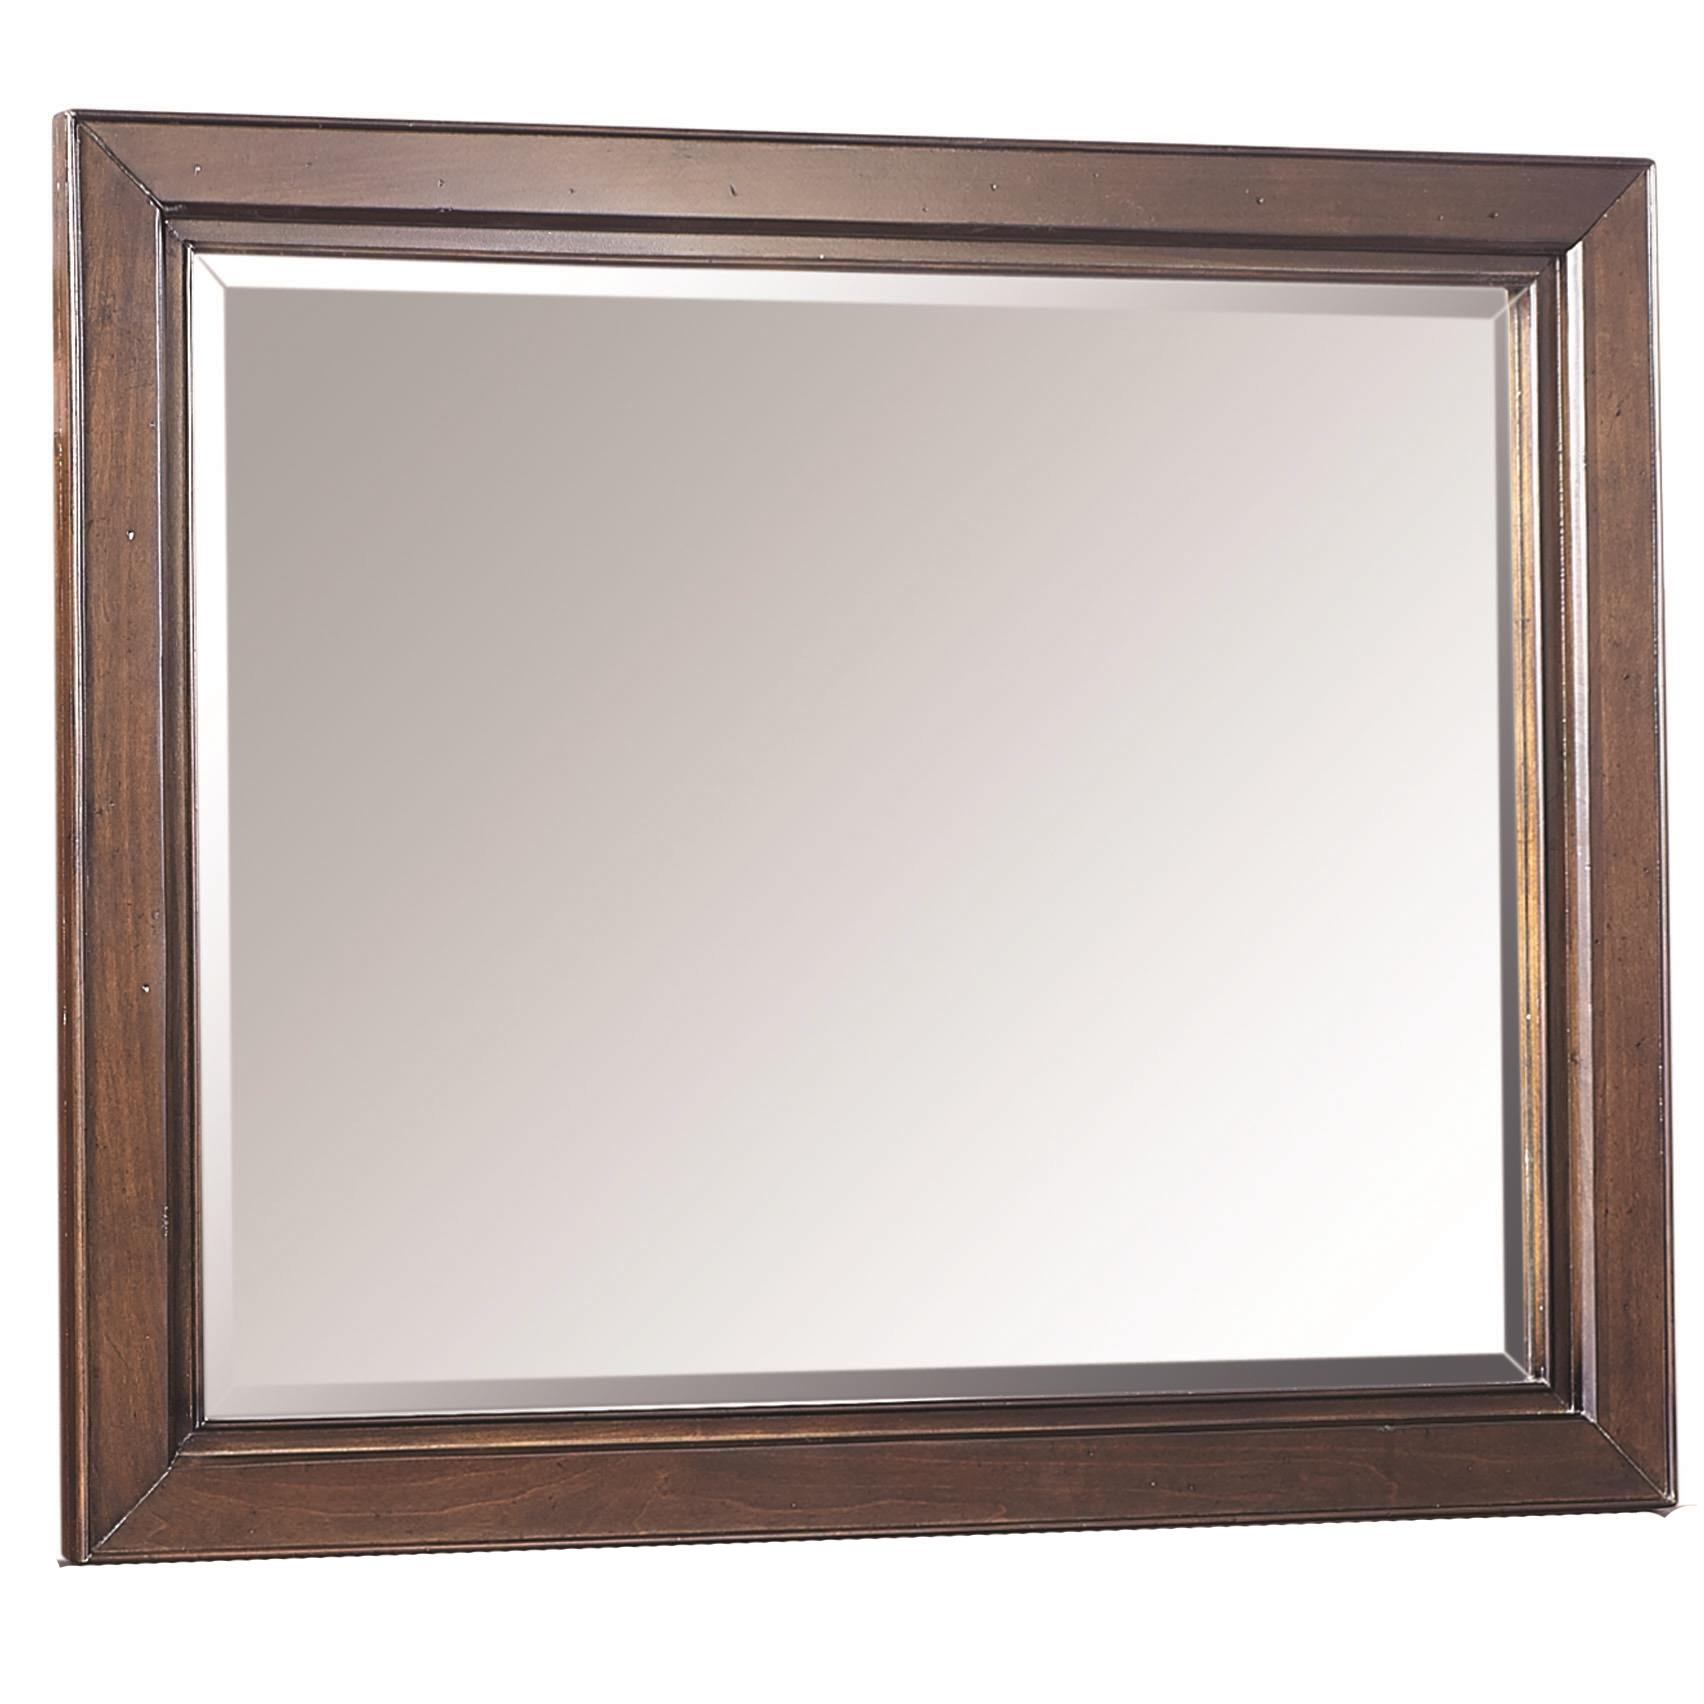 Aspenhome Bancroft Mirror - Item Number: 108-463